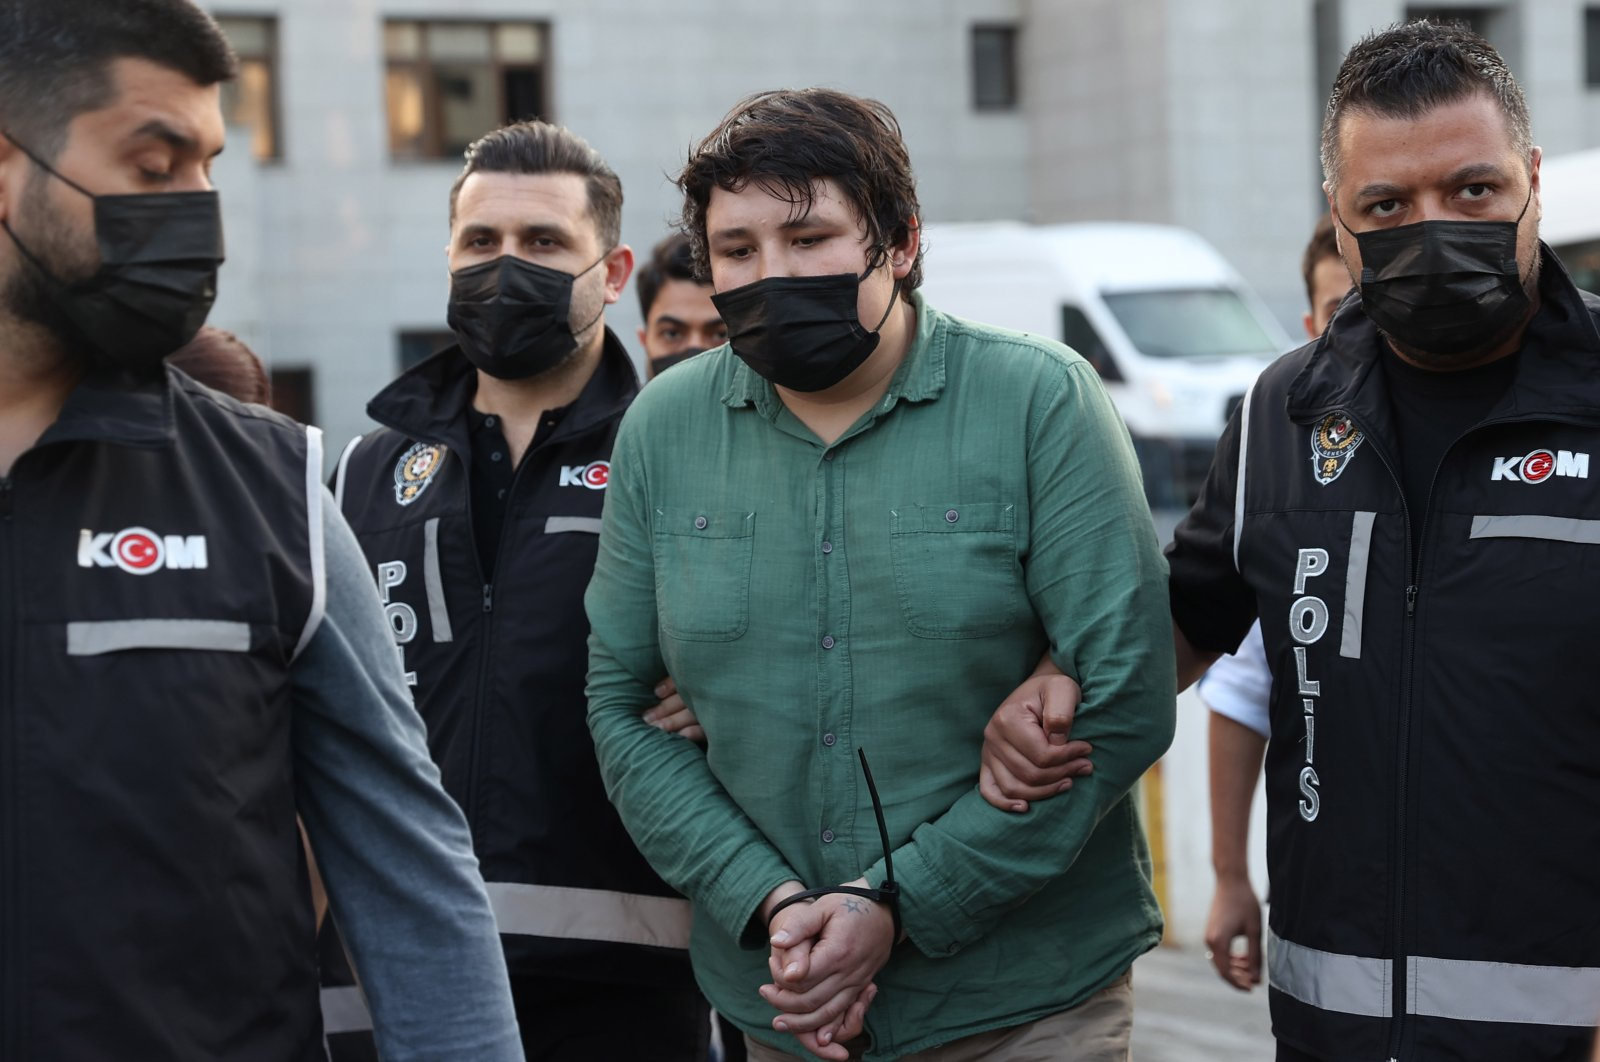 Mehmet Aydın (C) is escorted by Turkish police to the court after a check-up at the Bayrampaşa State Hospital, Istanbul, Turkey, July 7, 2021. (AA Photo)